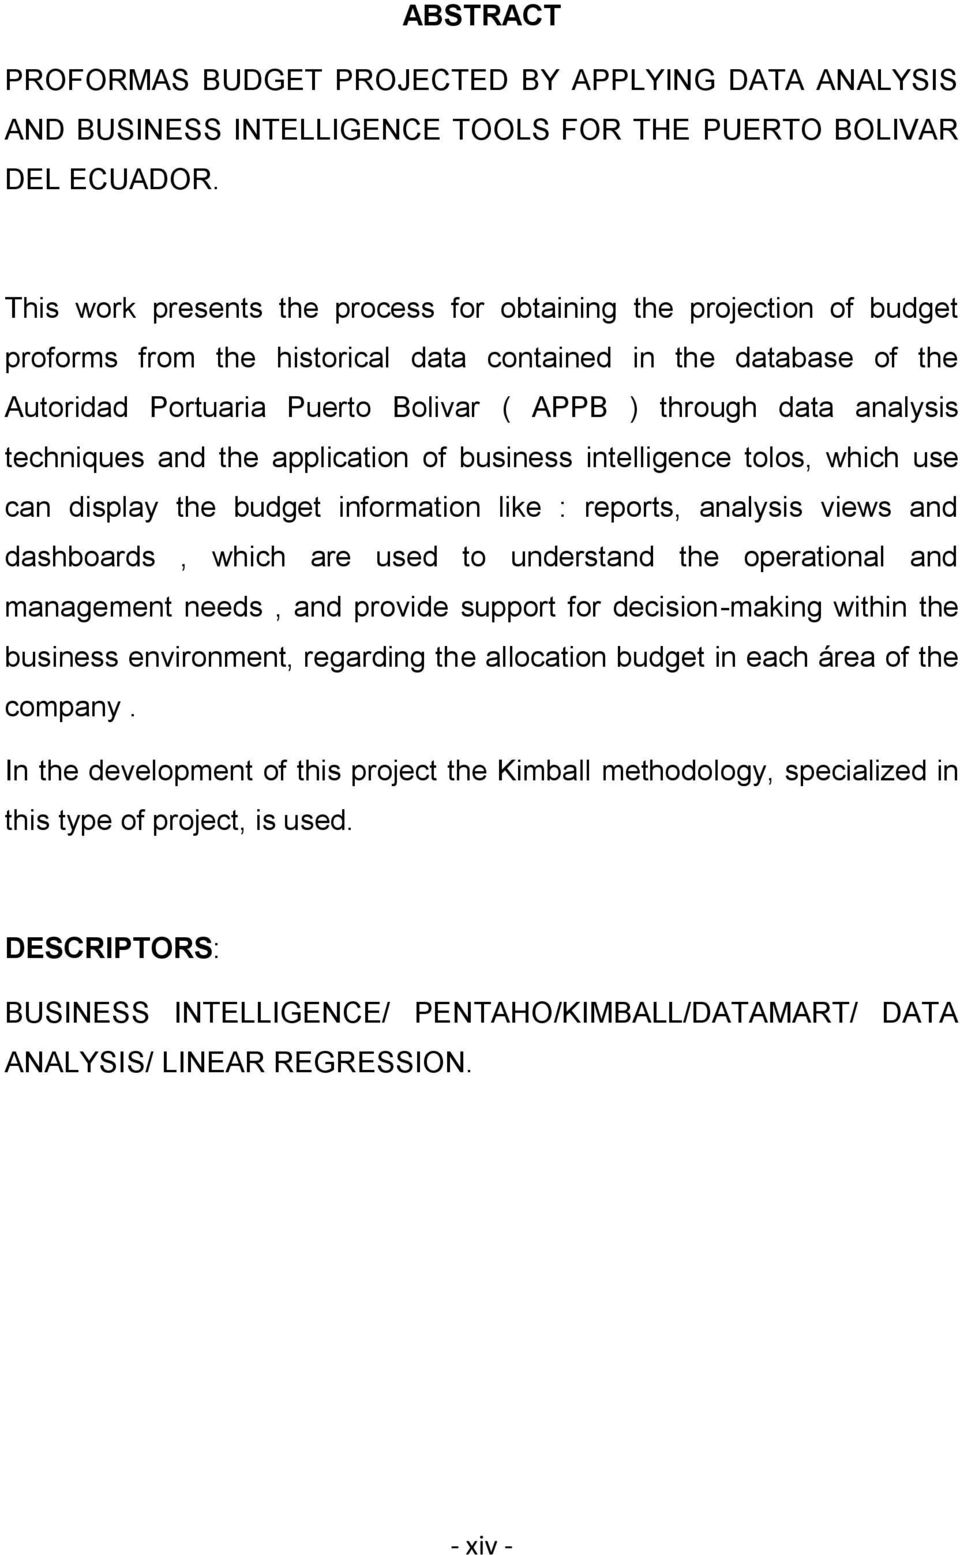 analysis techniques and the application of business intelligence tolos, which use can display the budget information like : reports, analysis views and dashboards, which are used to understand the